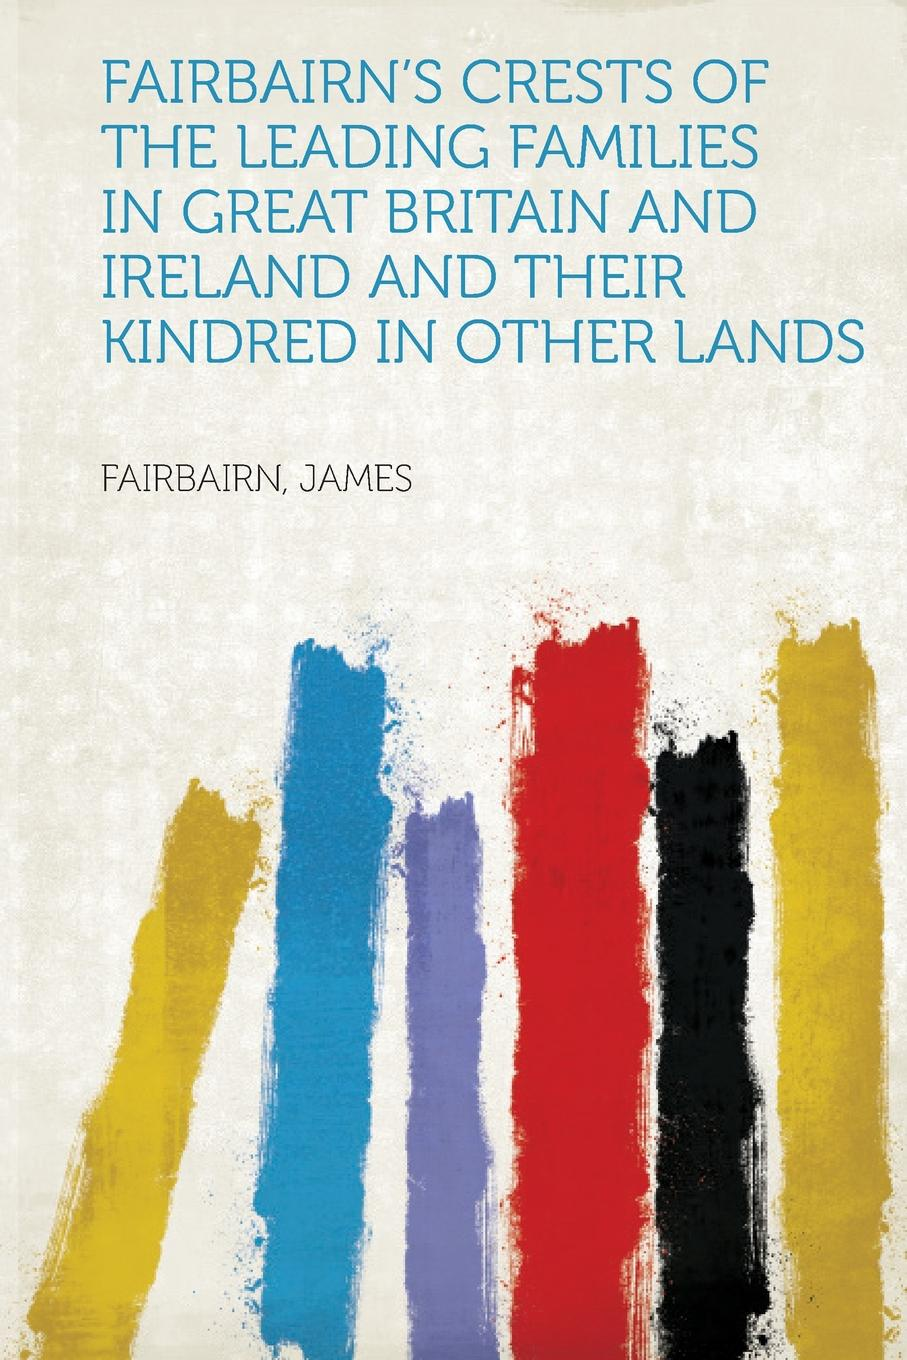 Fairbairn James F Crests of the Leading Families in Great Britain and Ireland Their Kindred Other Lands